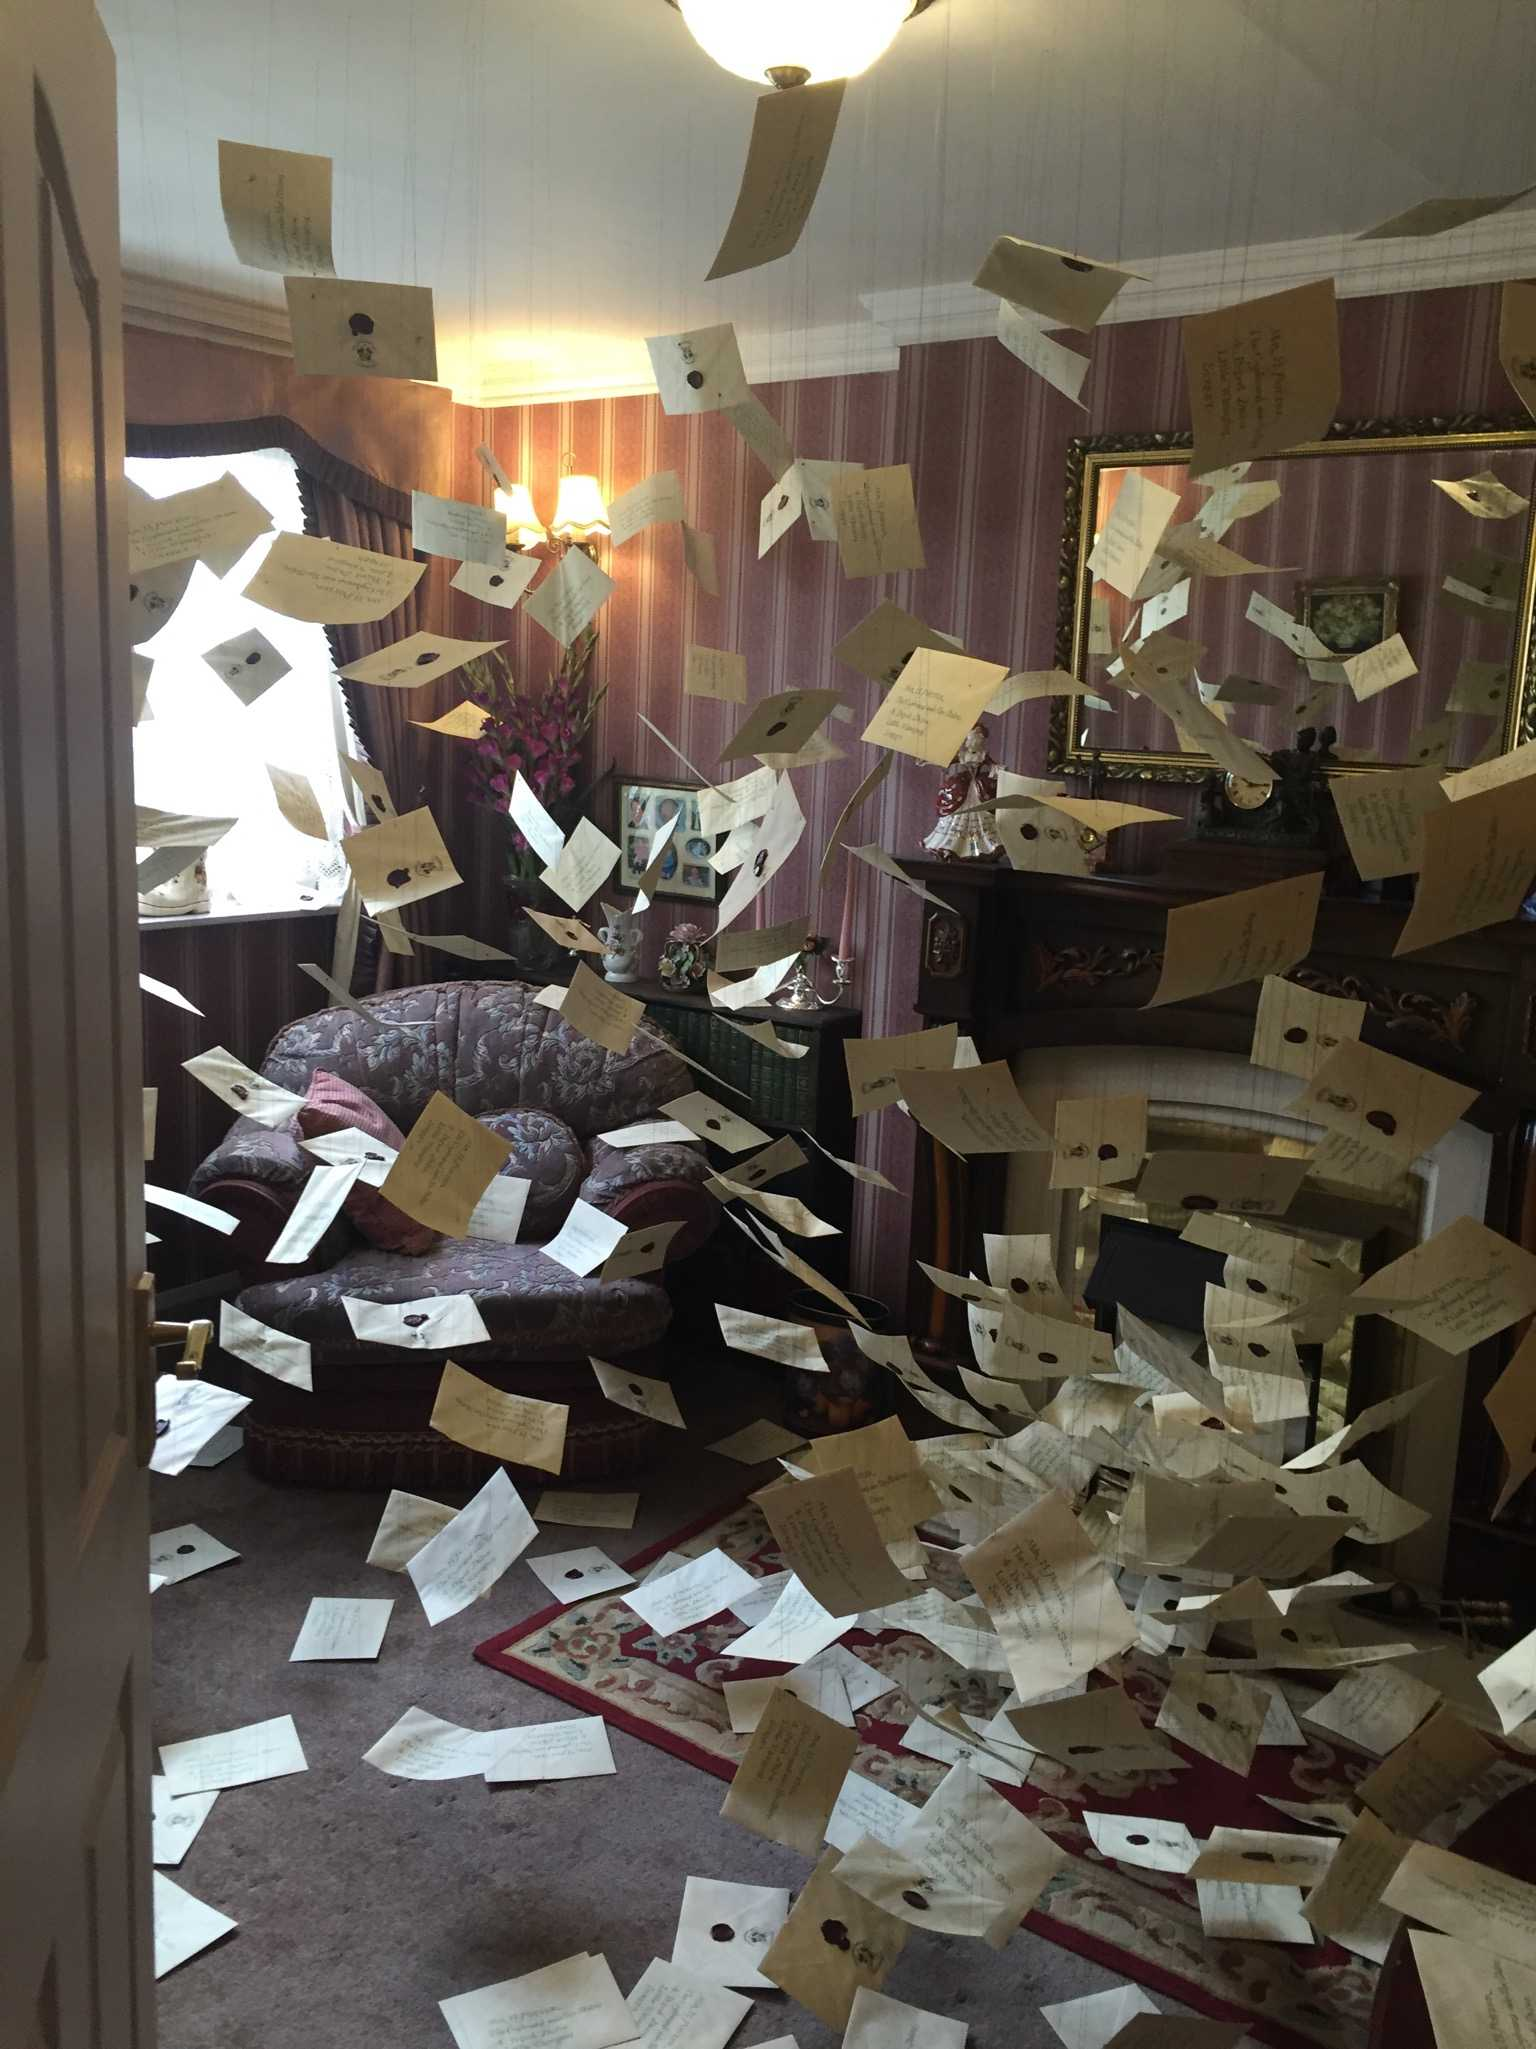 YOU'RE ACCEPTED: If you come home and your house looks like this, then congrats! You've been accepted to Hogwarts (you'll also need a bigger recycling bin).